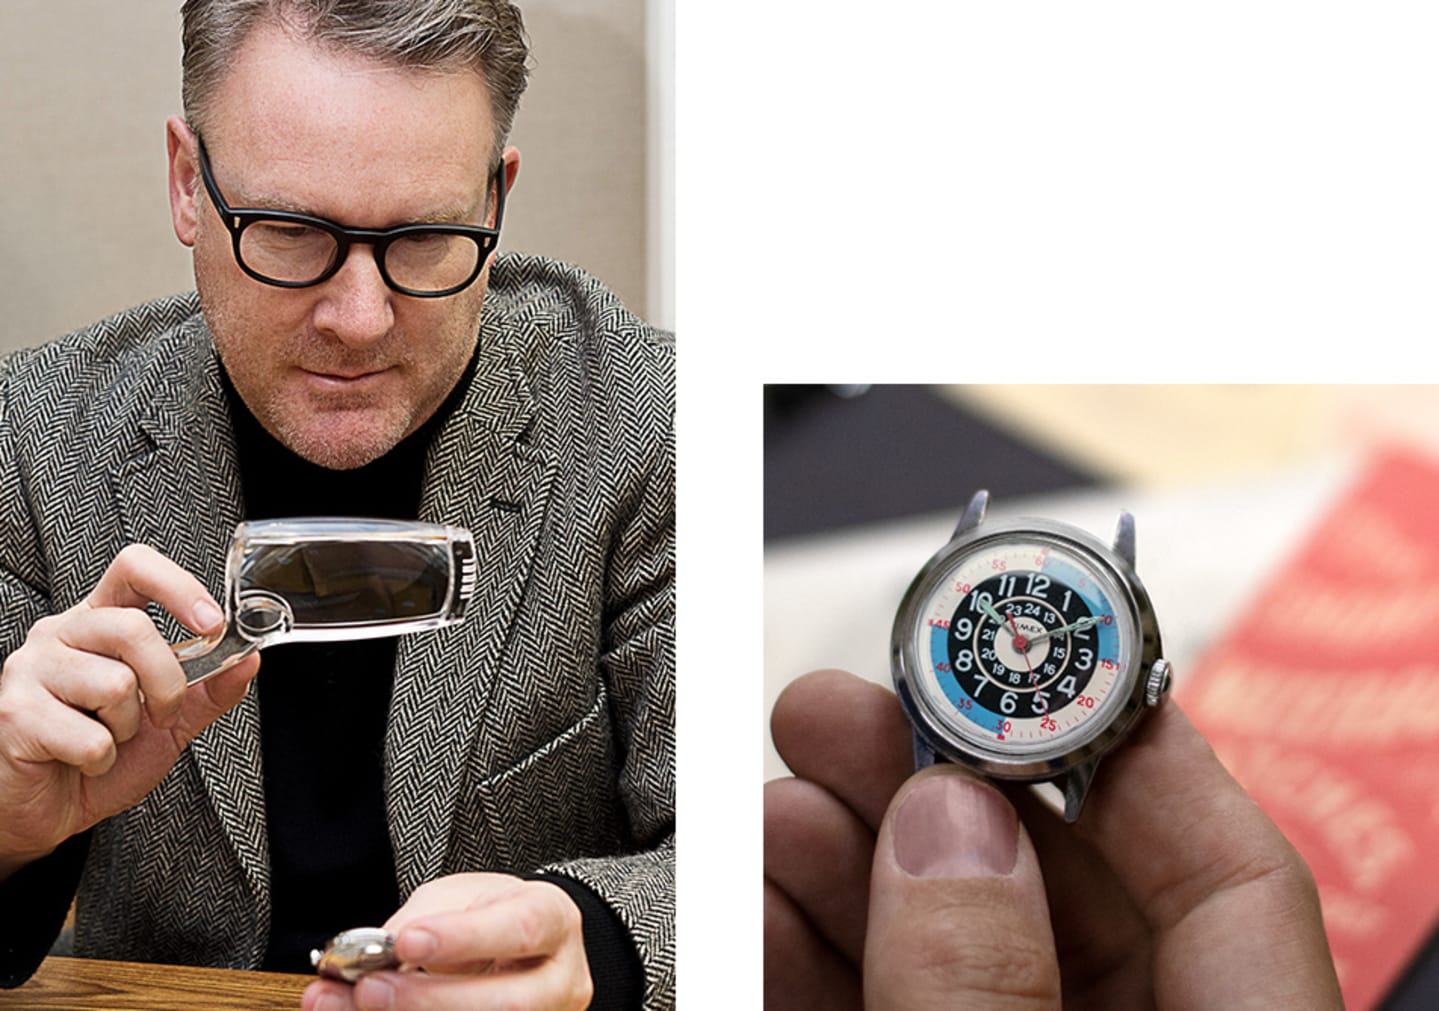 Todd Snyder Signature and him looking At Silver Watch With Focus and The Silver Watch He Is Looking At on the Right Side Of The Page